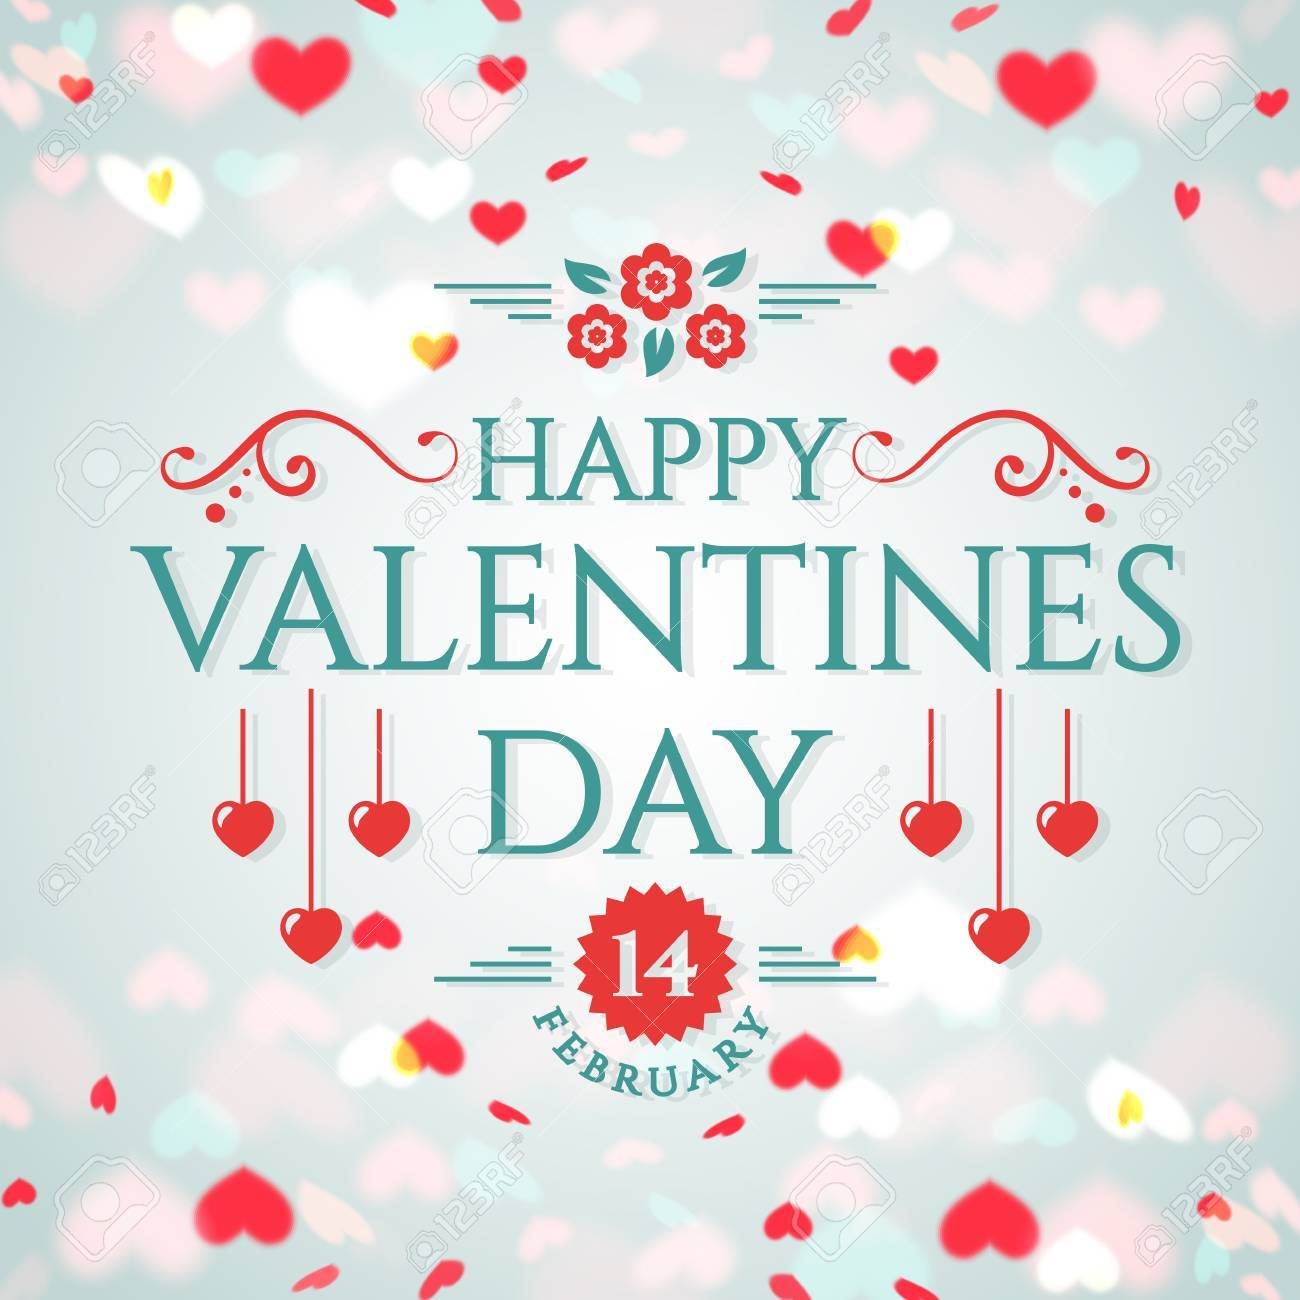 Happy Valentine\'s Day! Romantic Greeting Card With Hearts Background ...